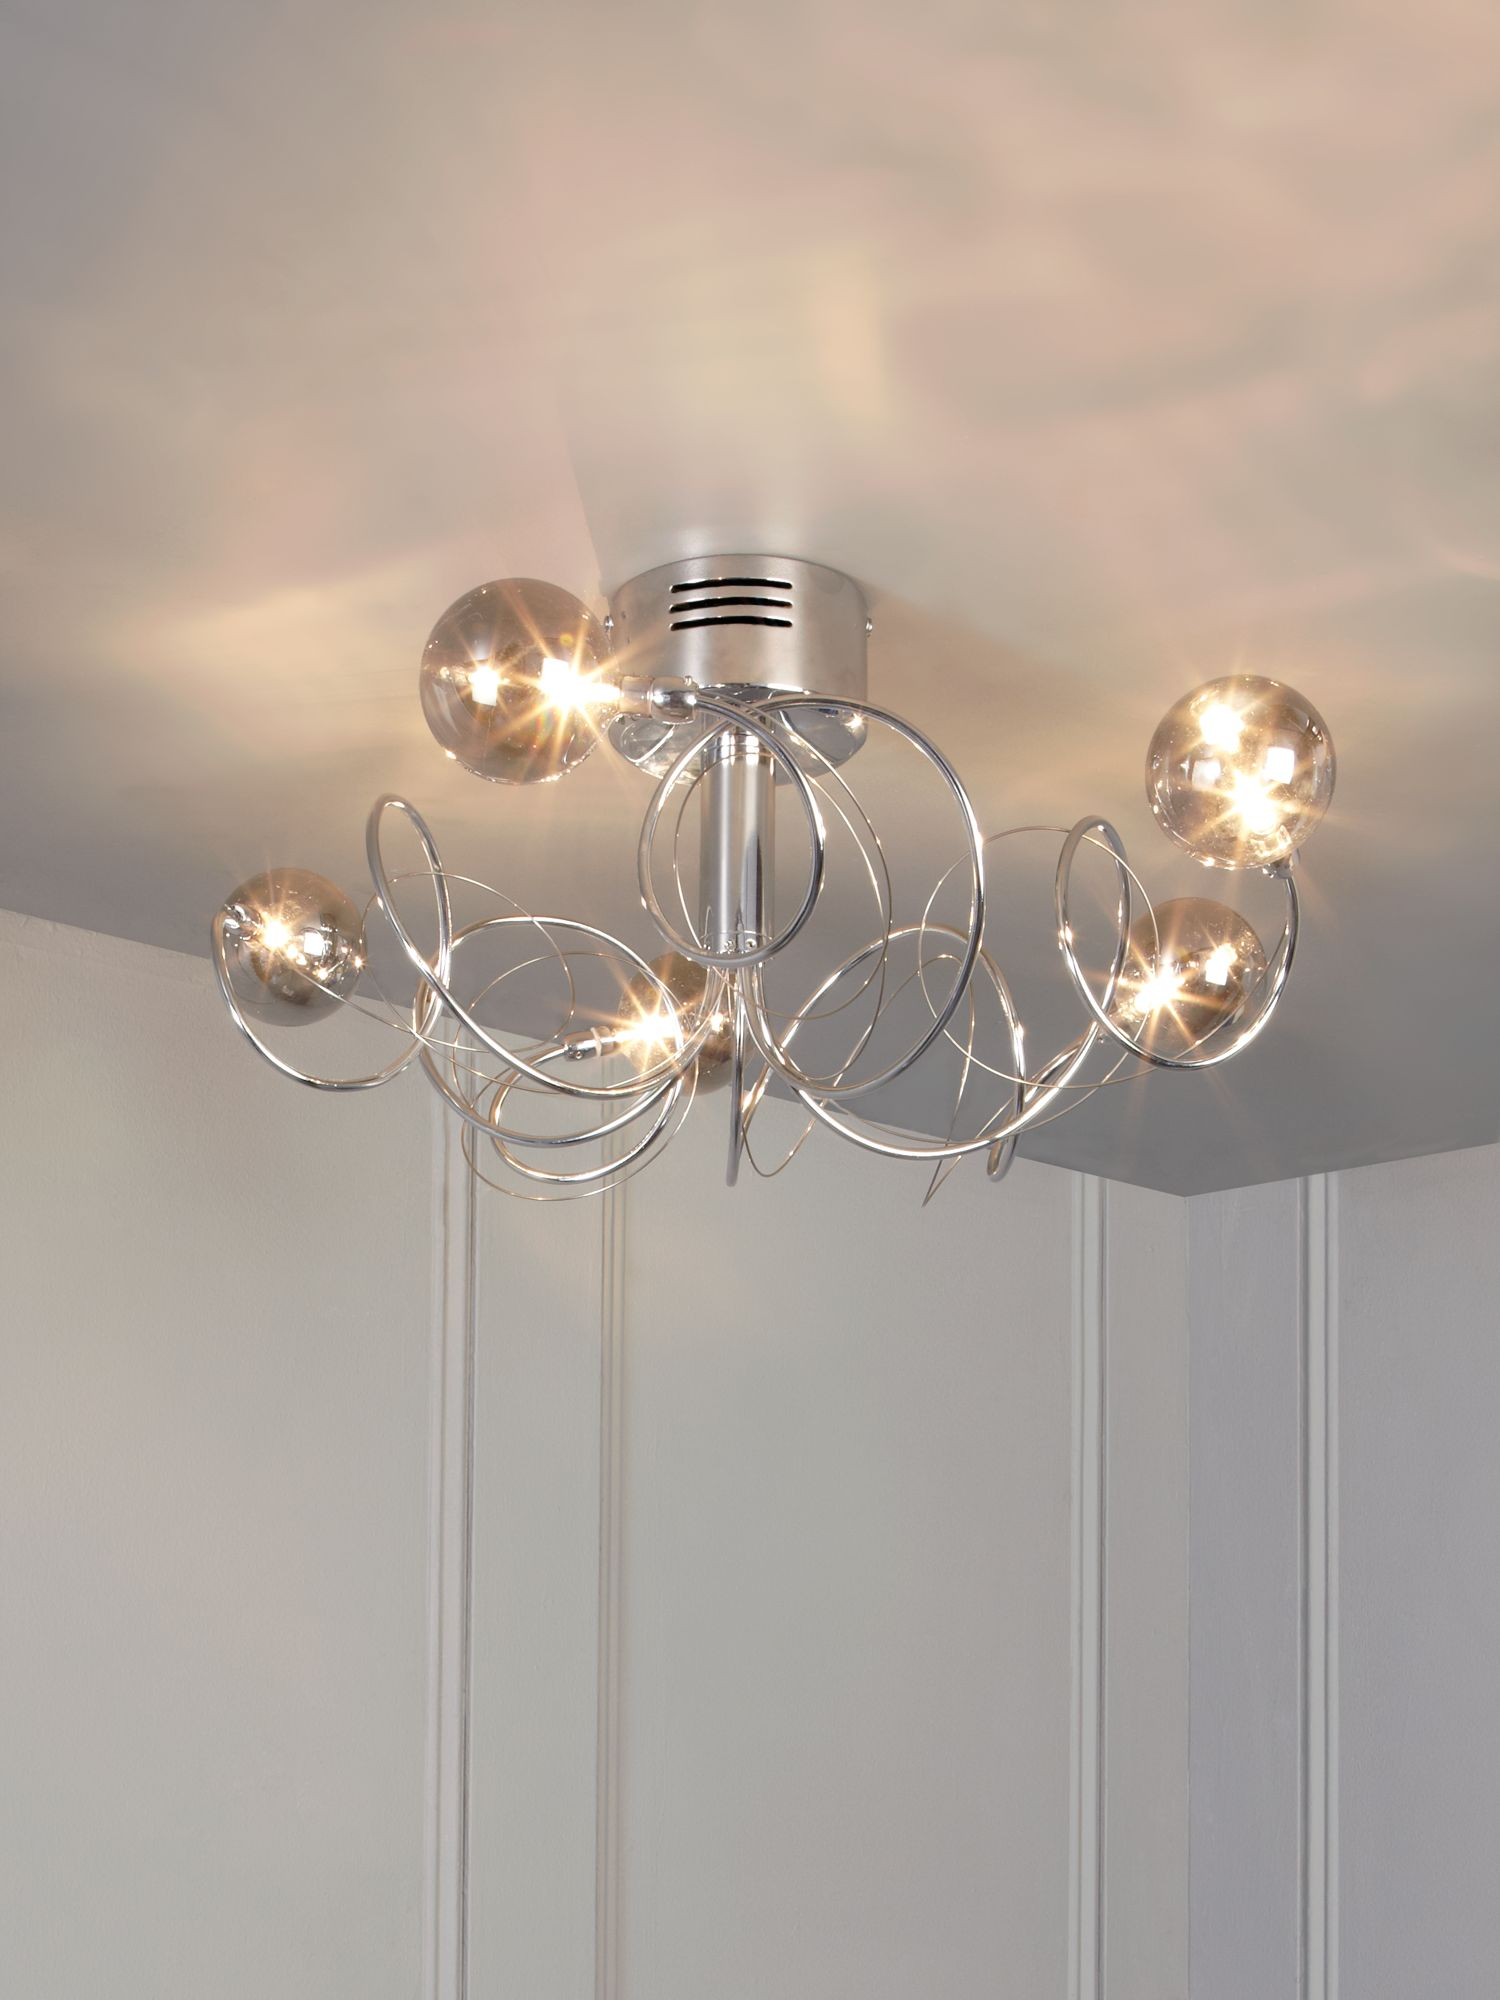 Cos chrome 5 light smoked ball ceiling light